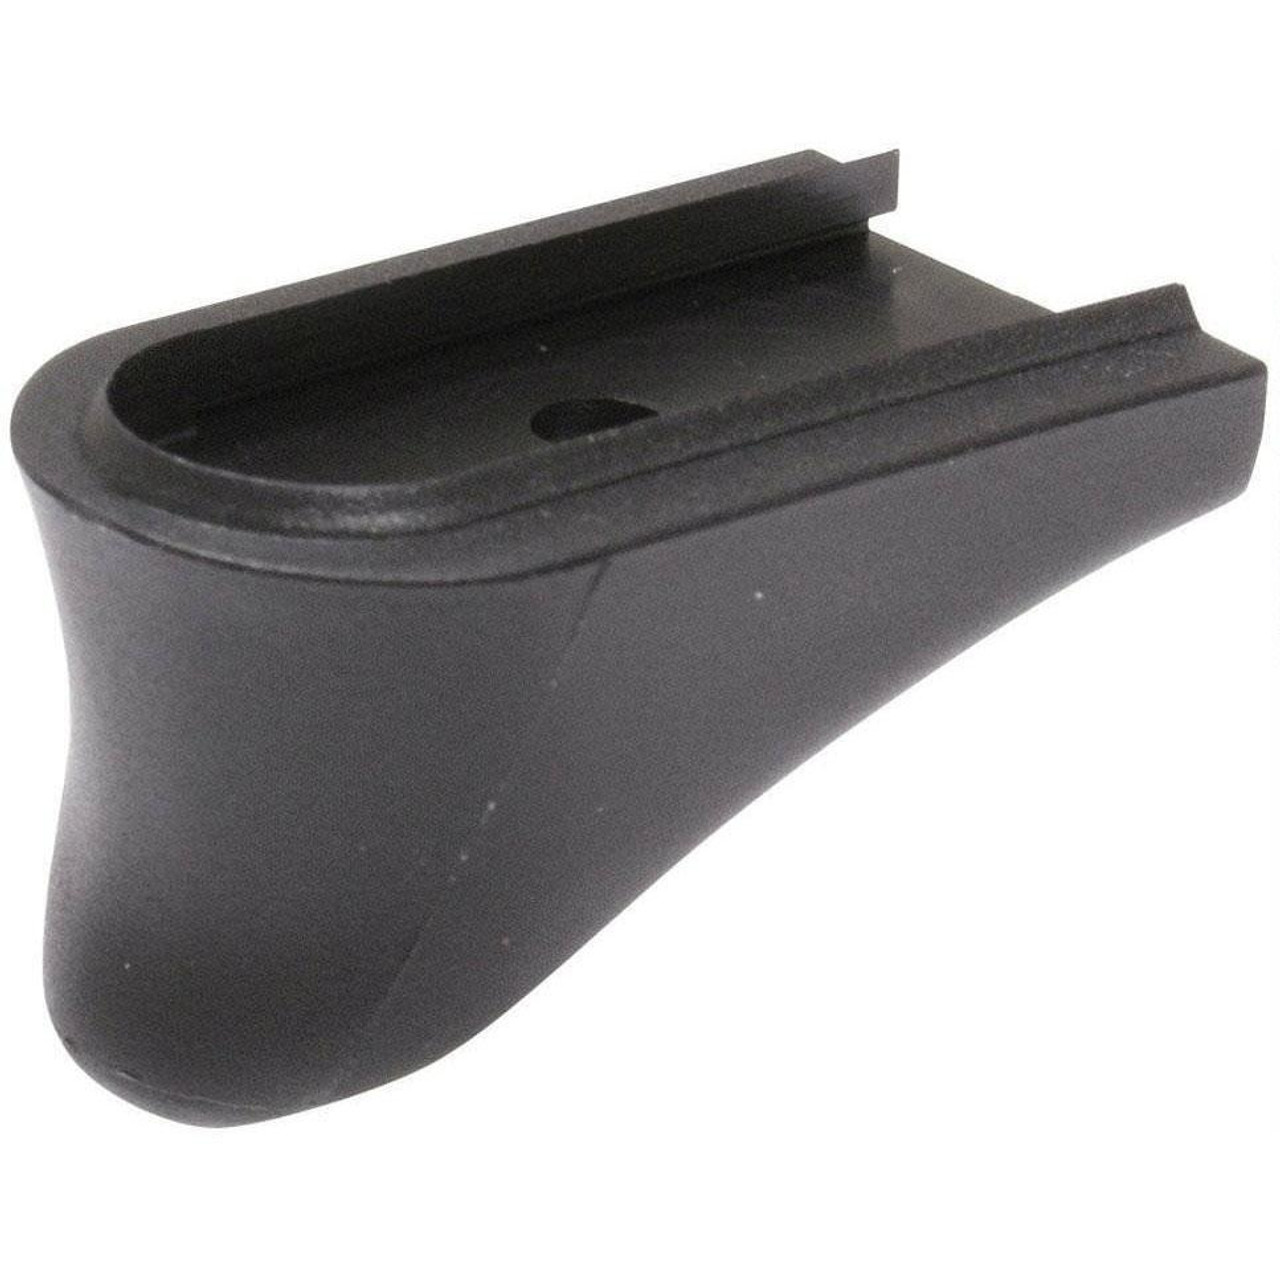 Pearce Grip Extension for XDM 9mm/40S&W - Black